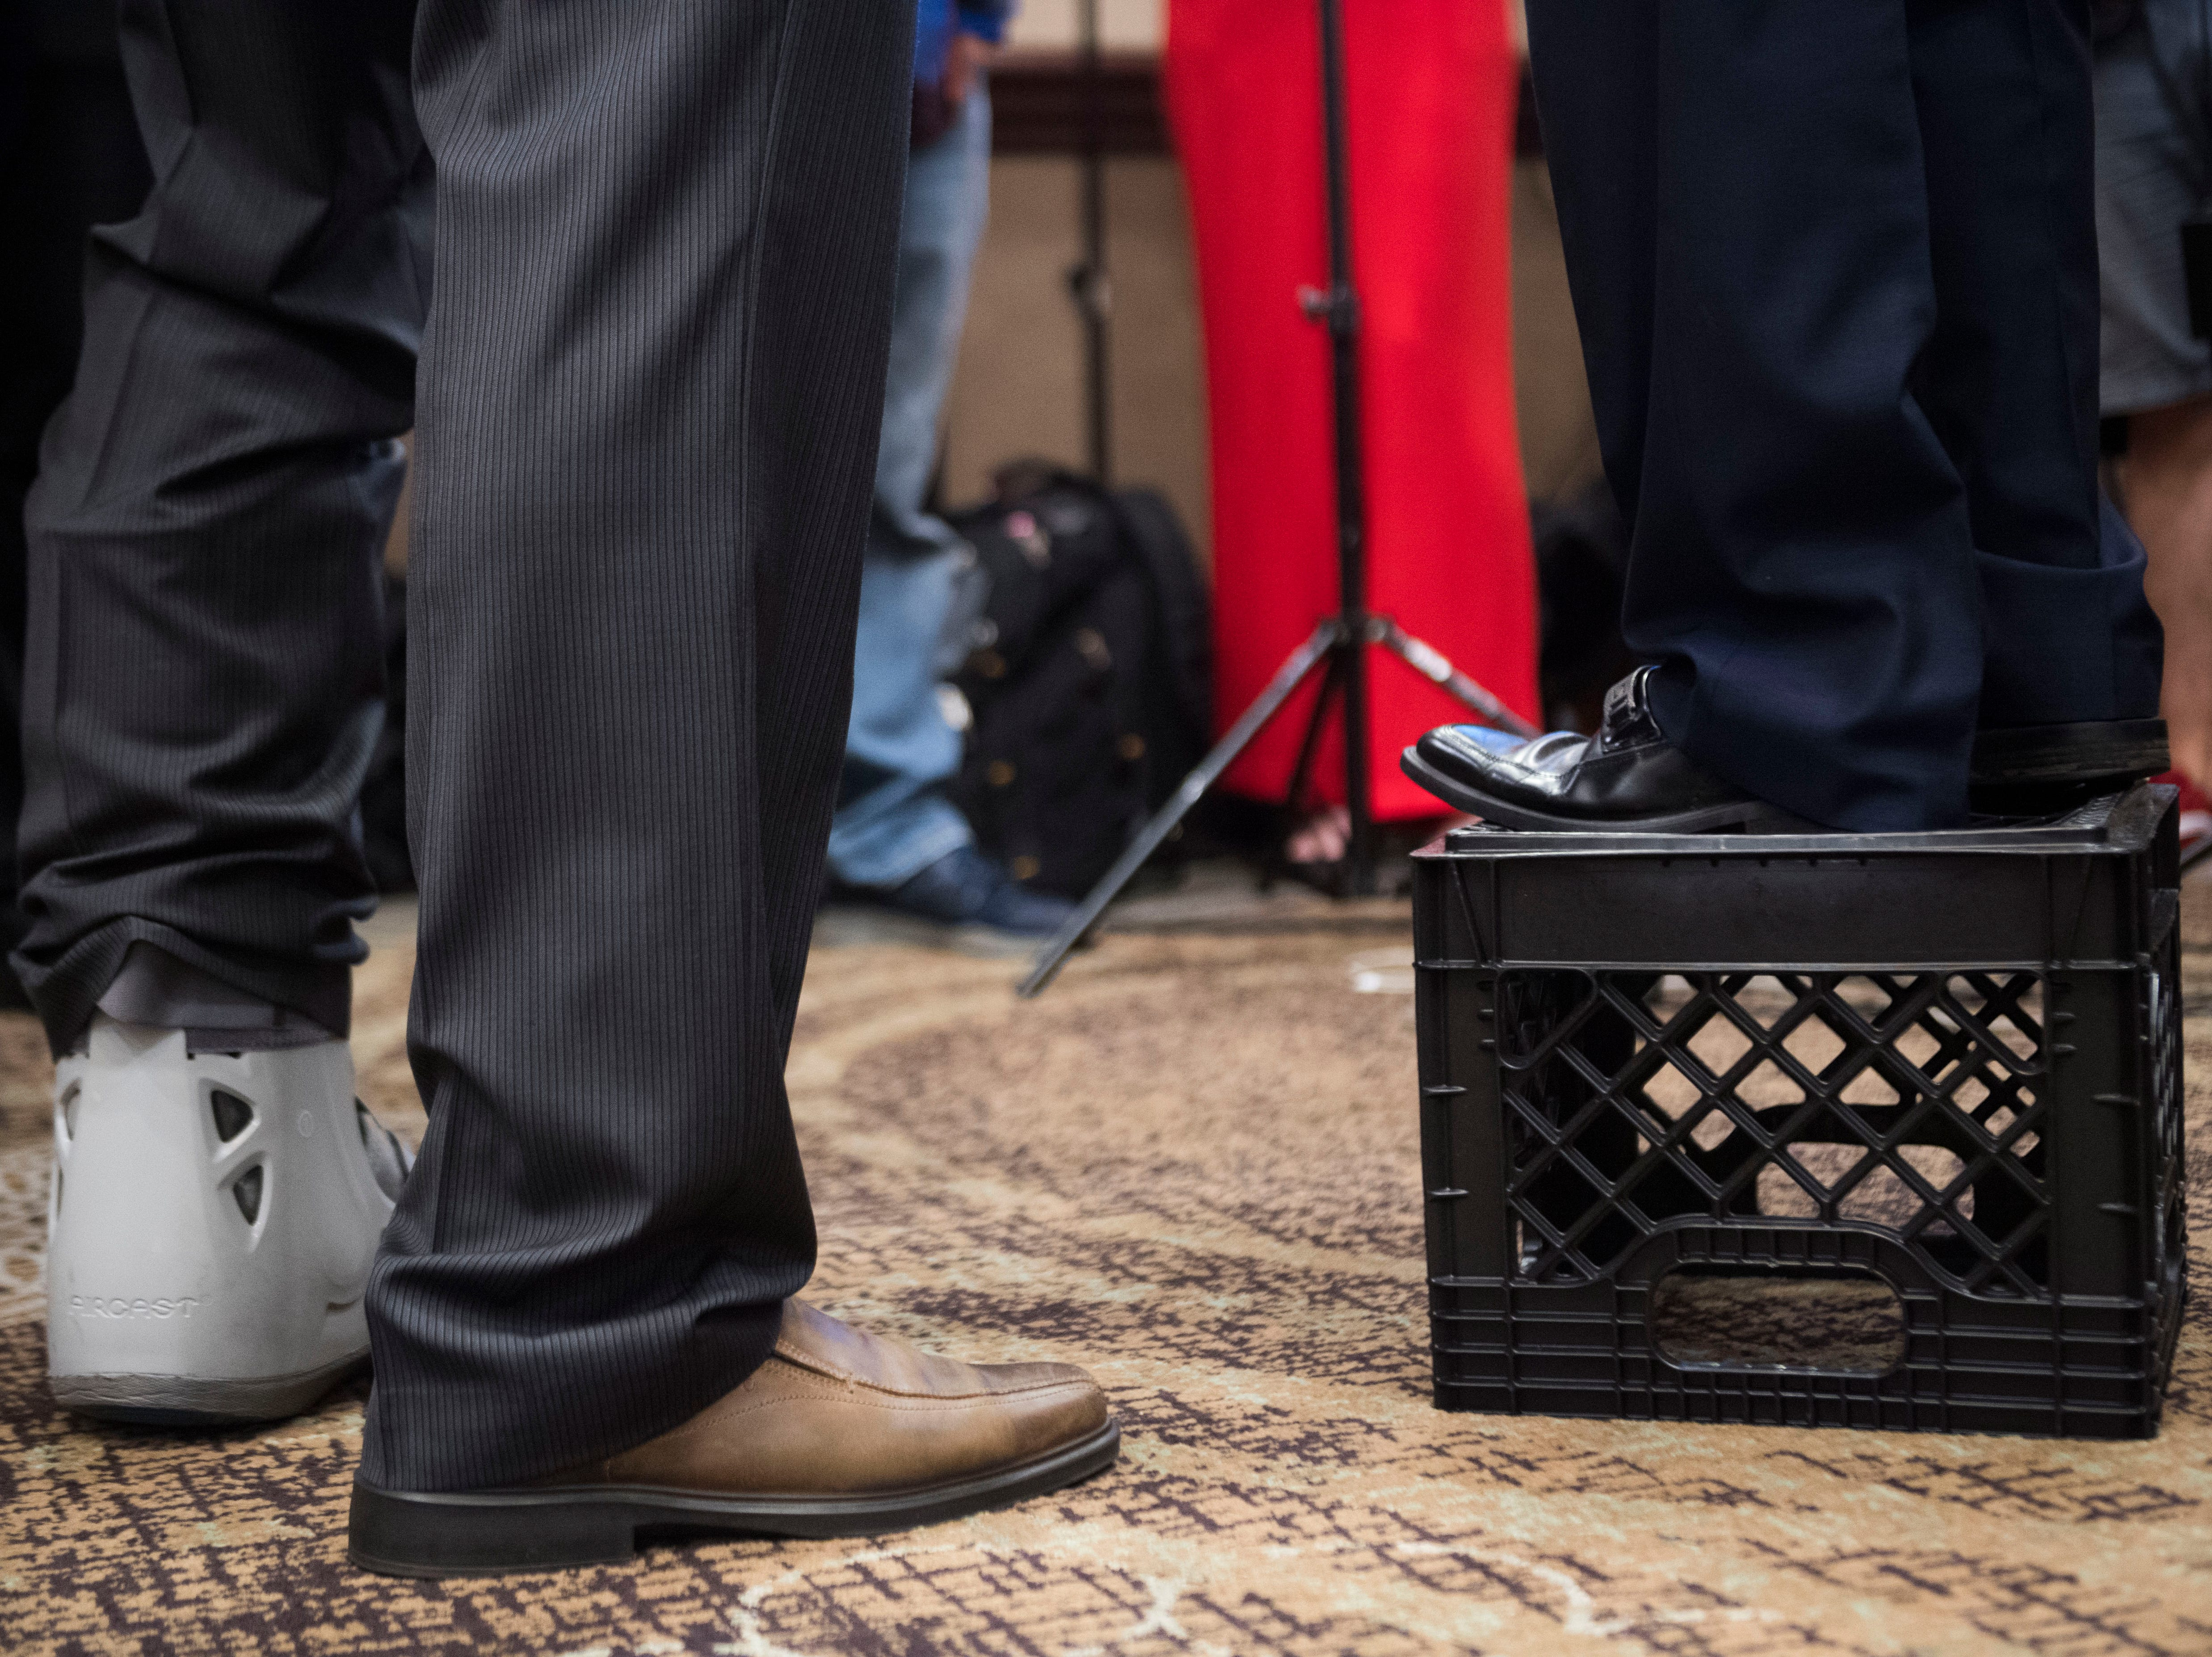 A member of the media stands on a milk crate to interview Glenn Jacobs at the Crowne Plaza on election day in Knox County Thursday, Aug. 2, 2018.